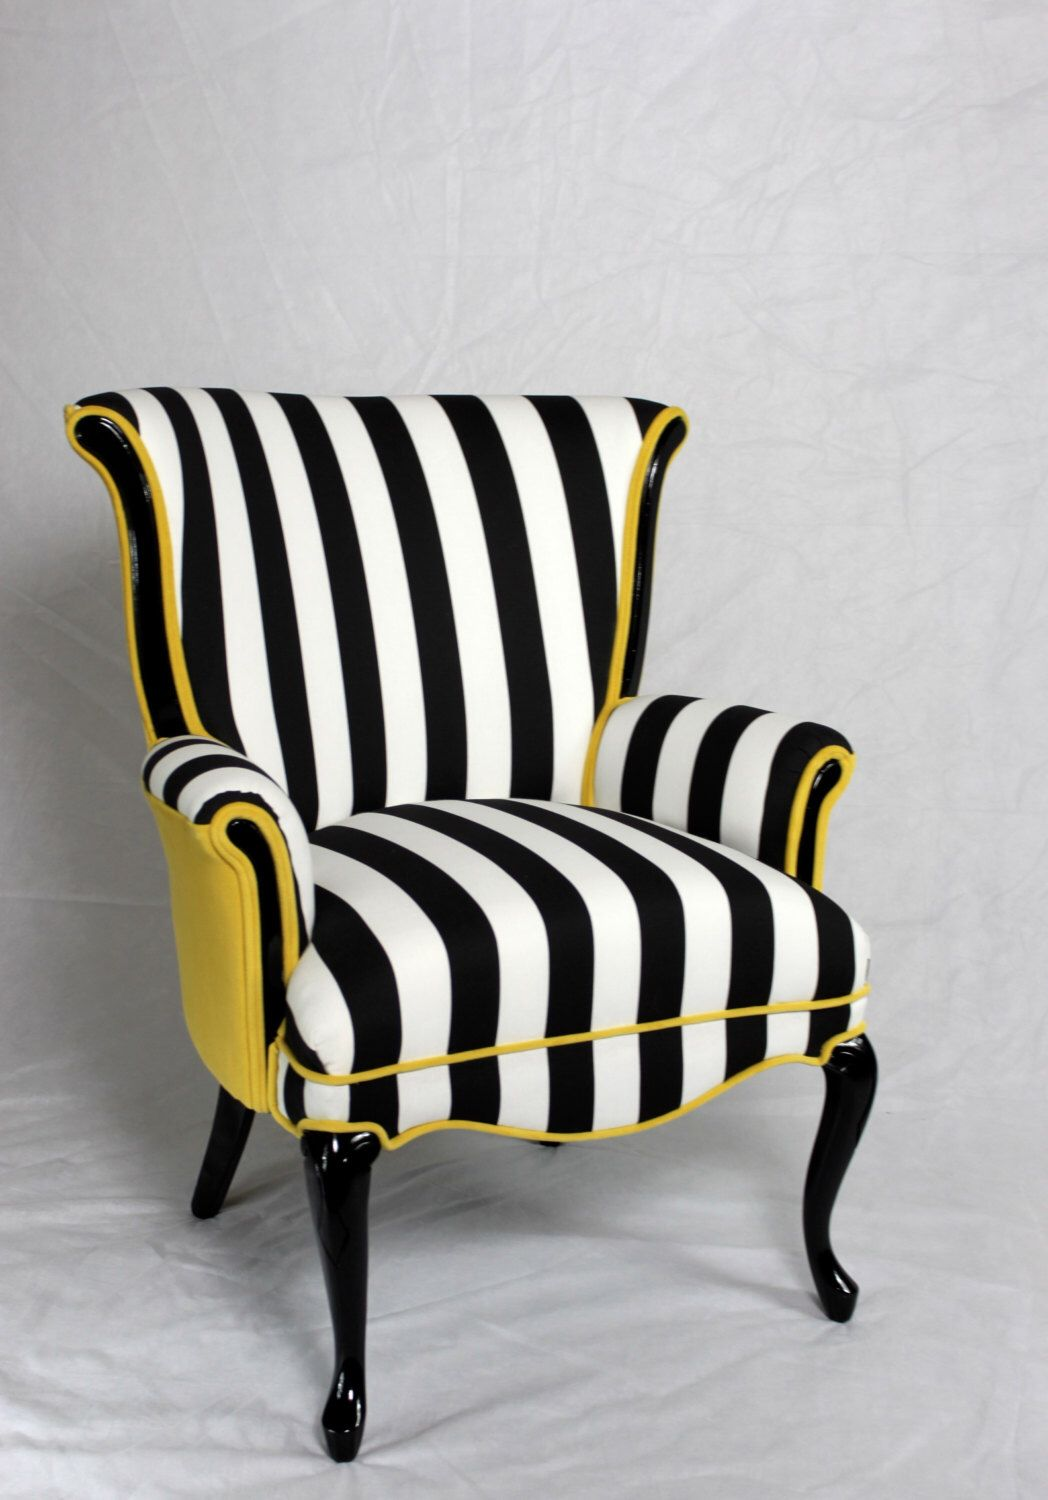 Black And White Striped Chair Sold Can Replicate Made In The Usa Black And White